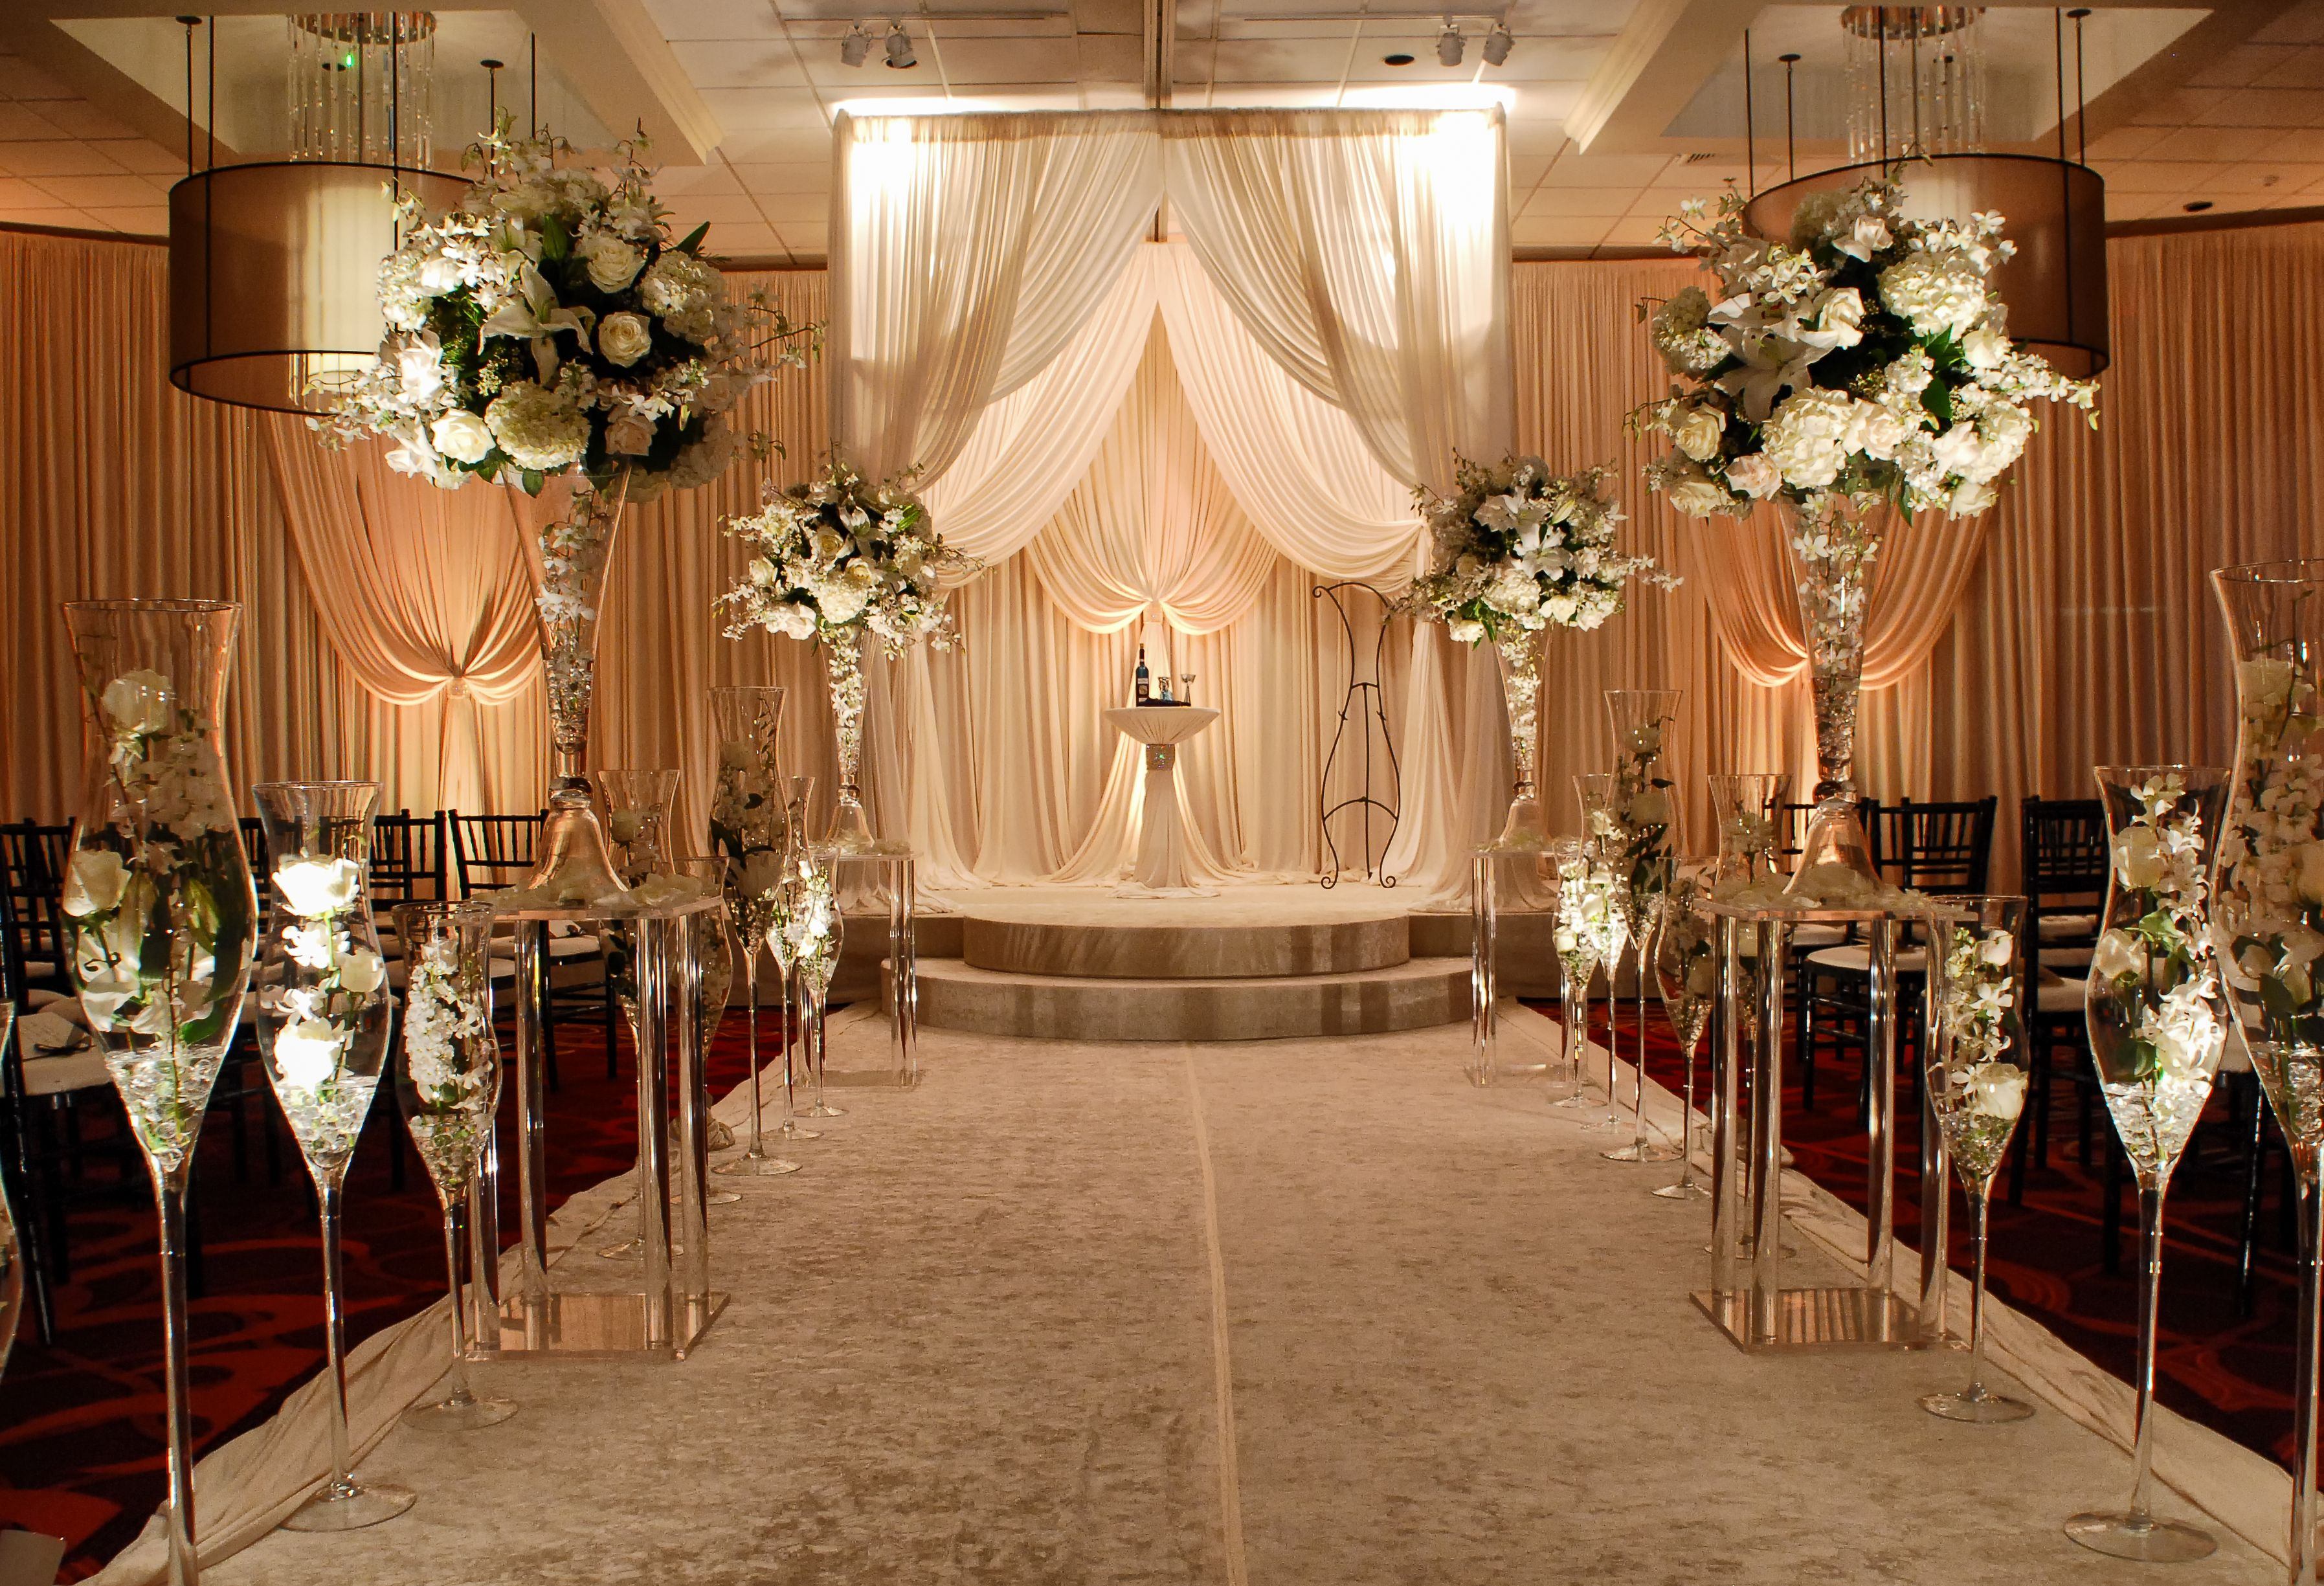 Cheap Wedding Ceremony And Reception Venues Near Me: Ceremony Northbrook Ballroom, Via @Renaissance Chicago